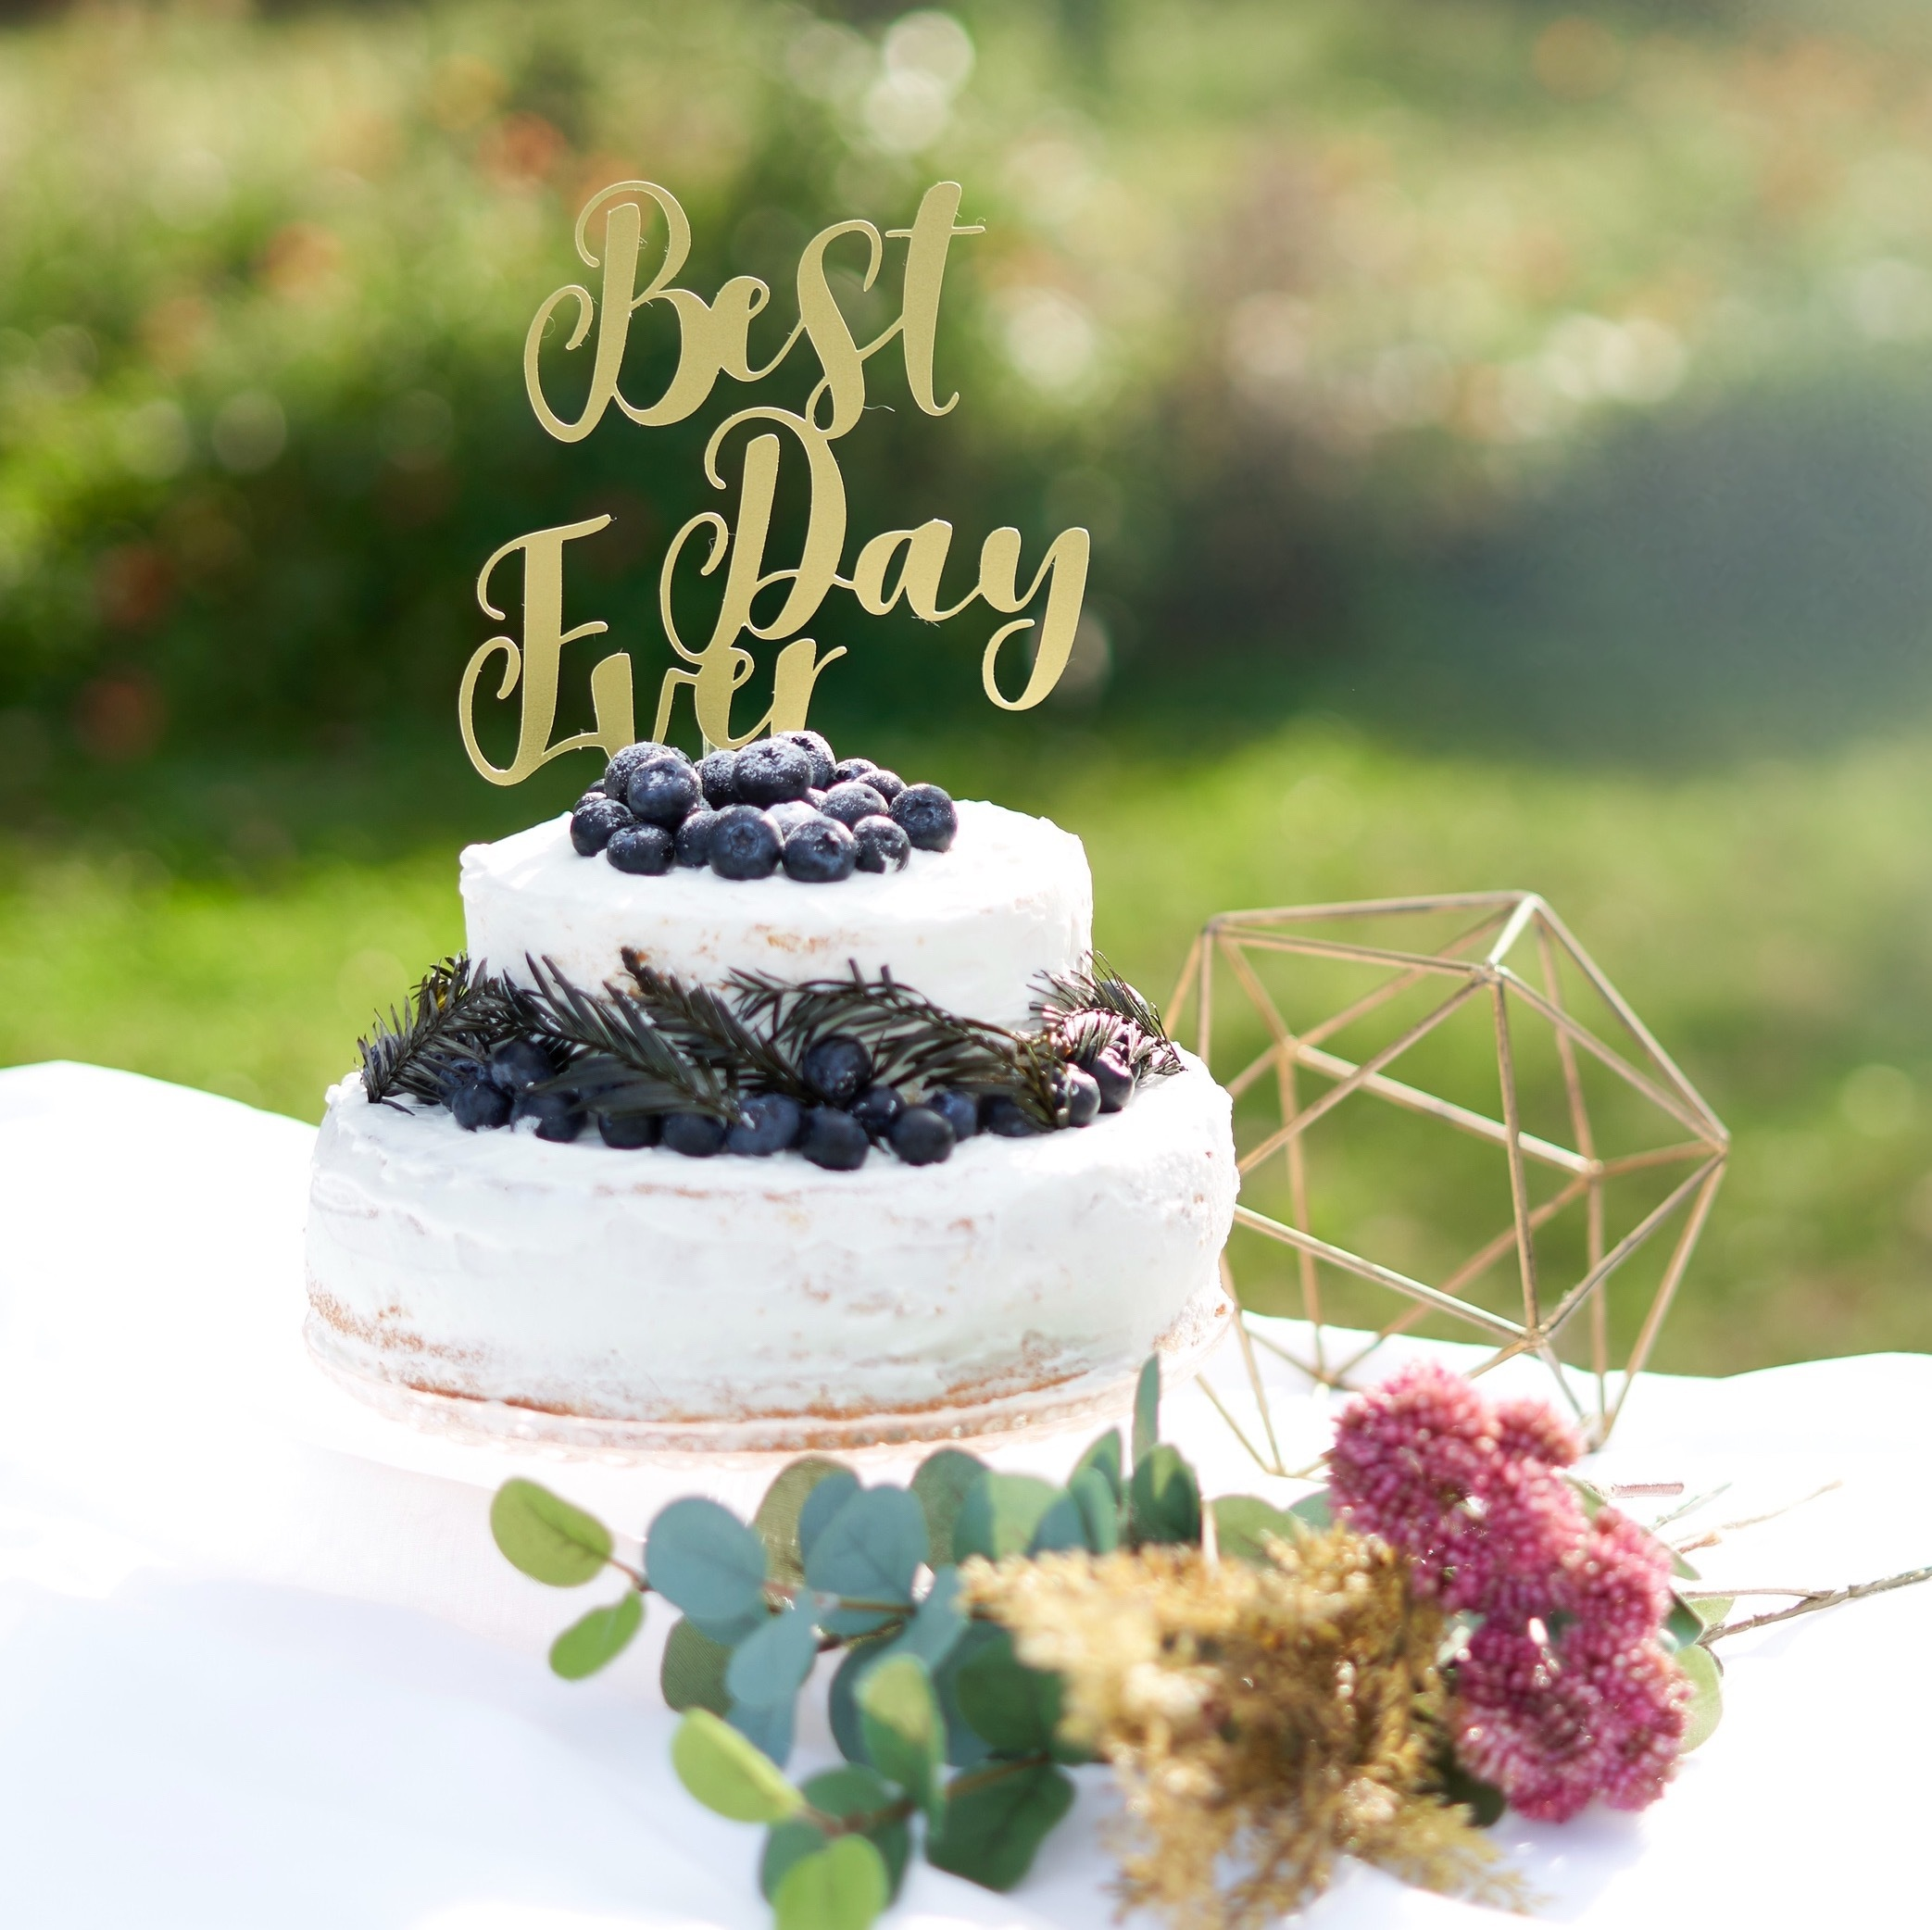 Best Day Ever ケーキトッパー 結婚式 ウエディング 飾り付け 誕生日